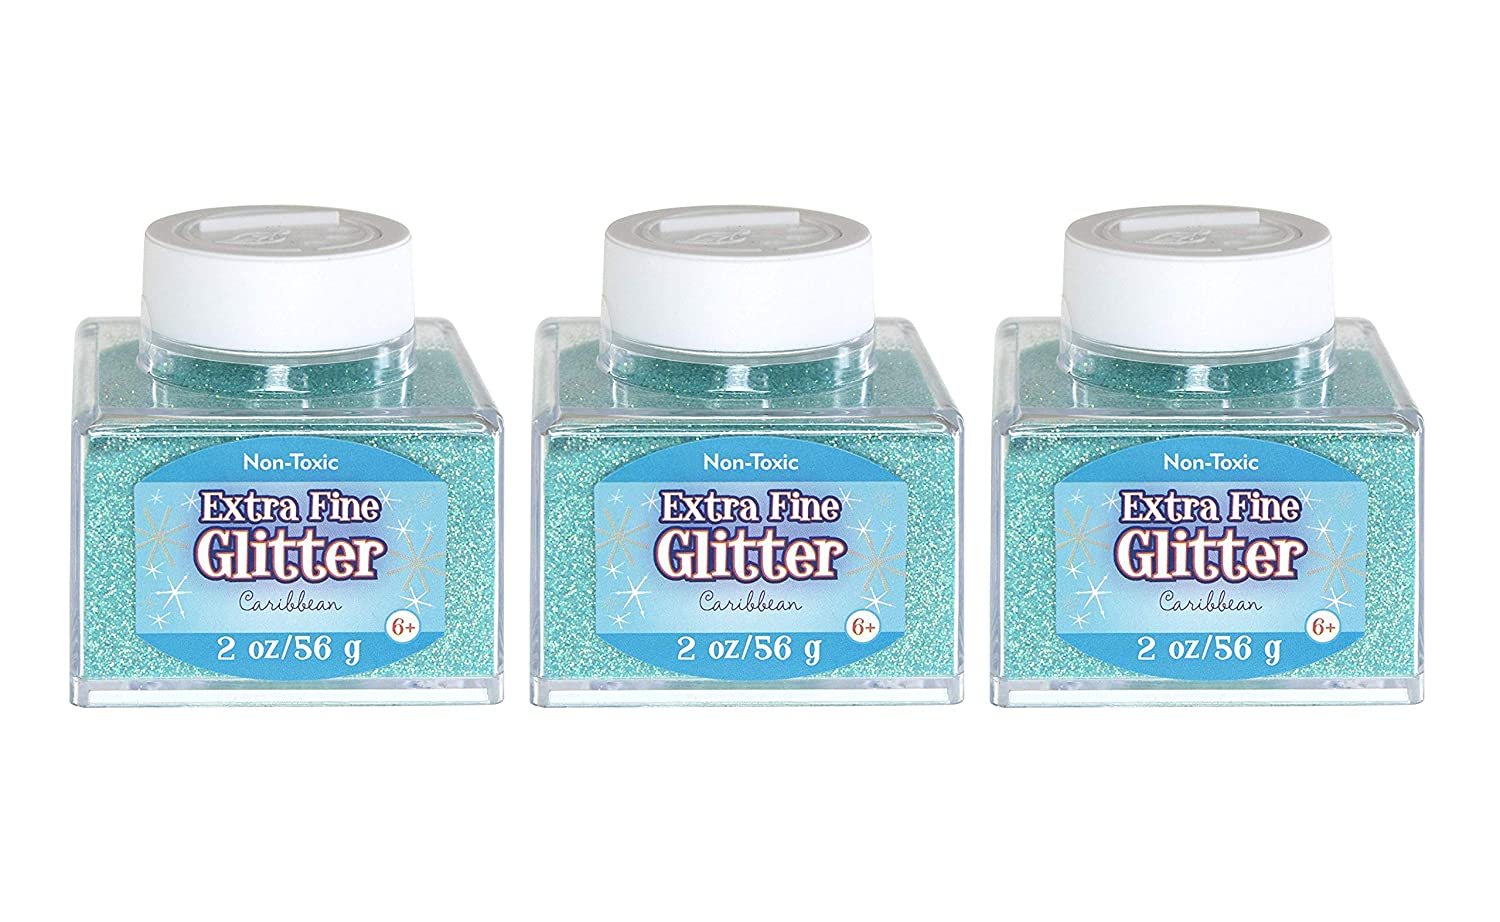 Sulyn Extra Fine Caribbean Glitter Stacker Jar, 2 ounces, Non-Toxic, Stackable and Reusable Jar, Blue Green Glitter, SUL51827